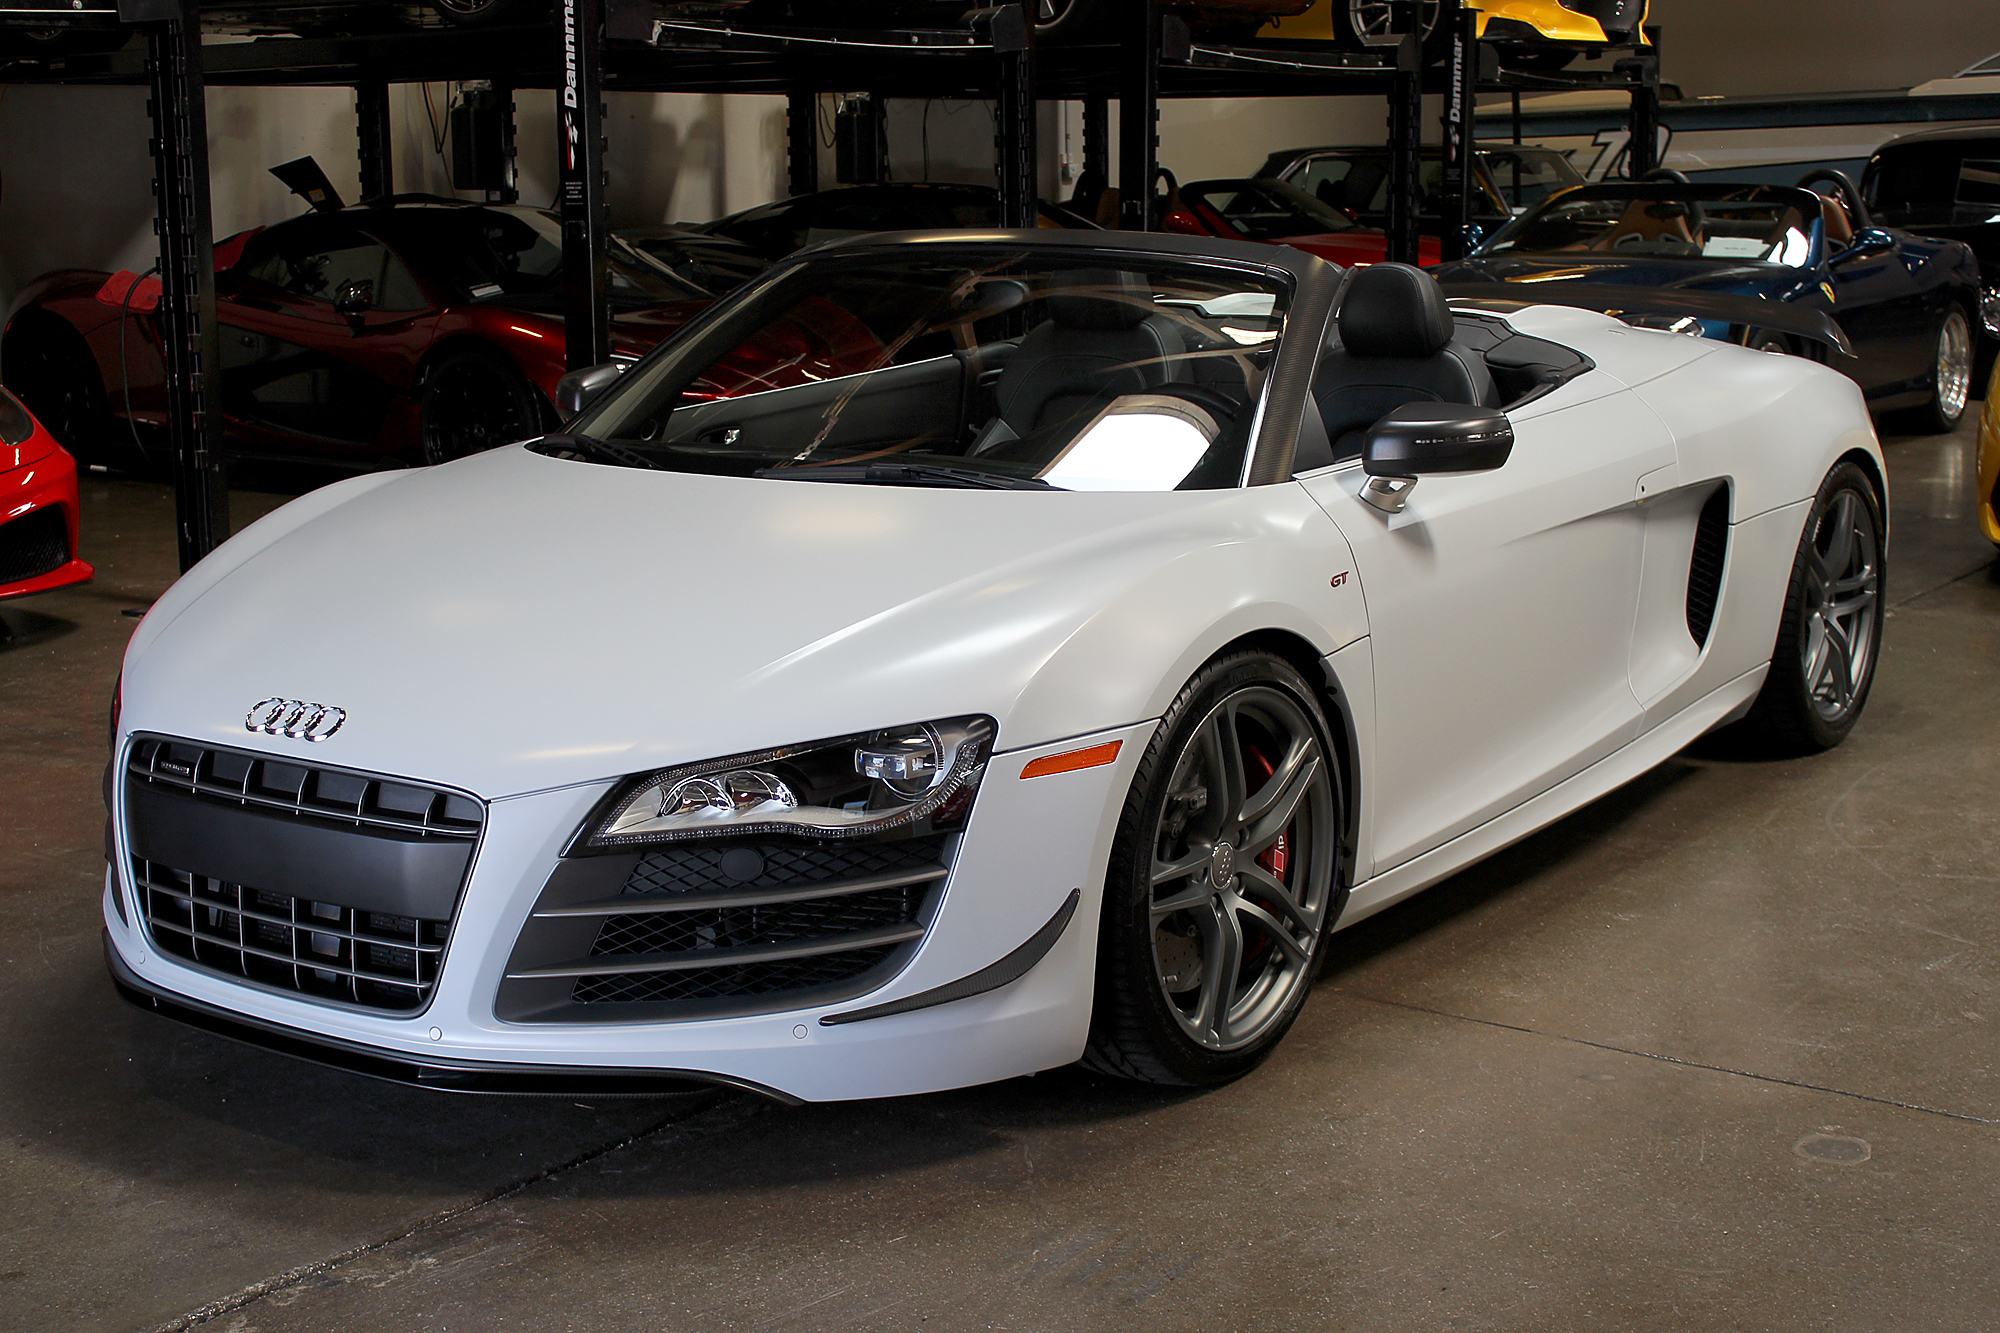 2012 audi r8 spyder san francisco sports cars. Black Bedroom Furniture Sets. Home Design Ideas